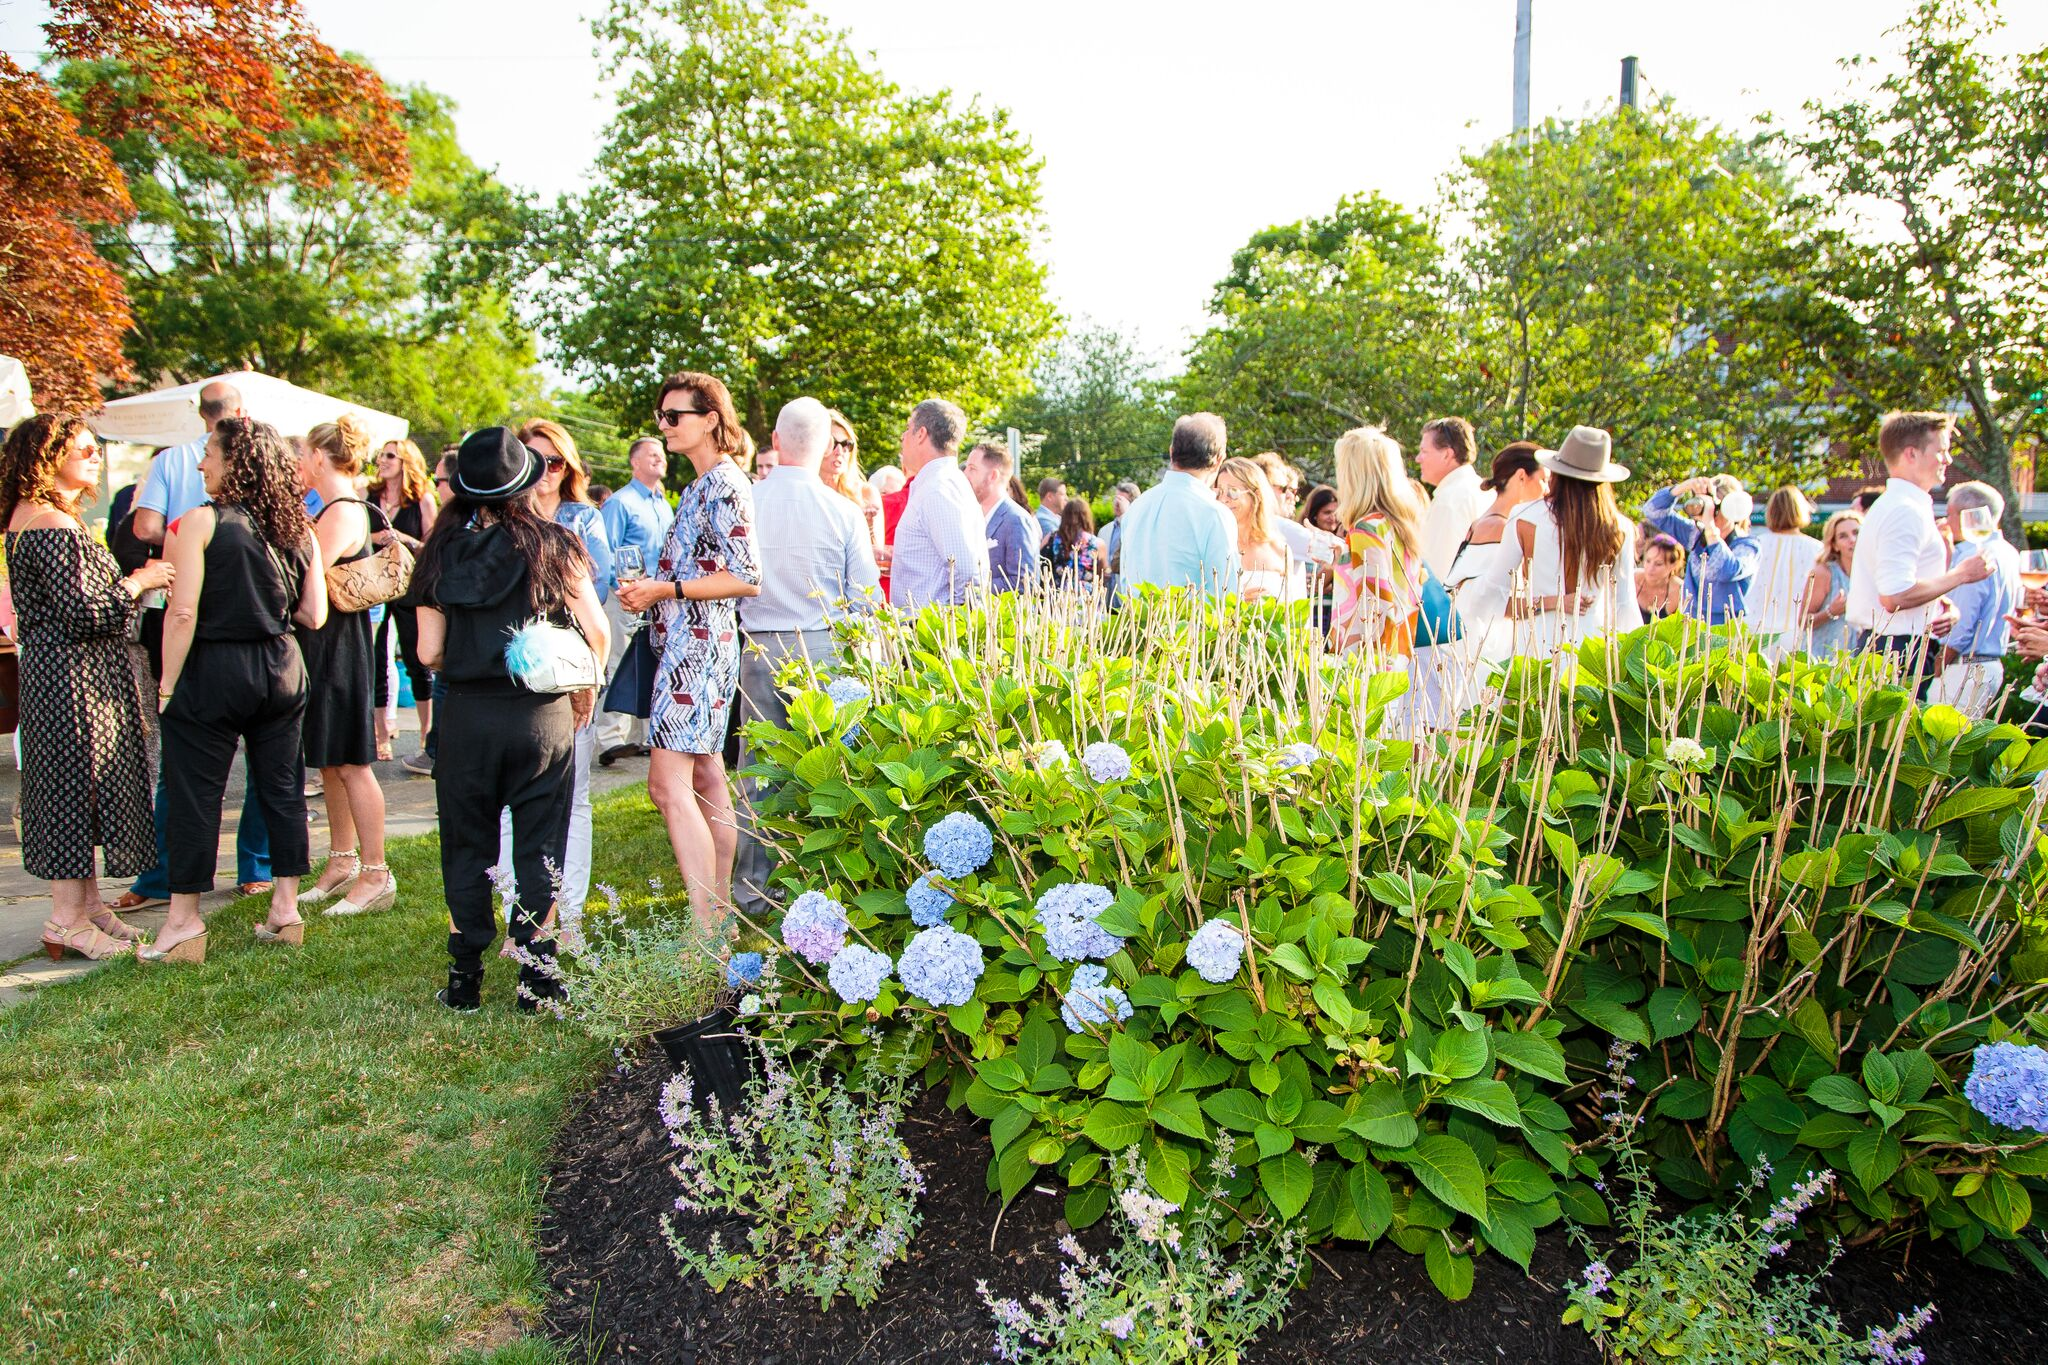 Beach Magazine Hosted a Health & Wellness Party  At New Union Cantina Restaurant